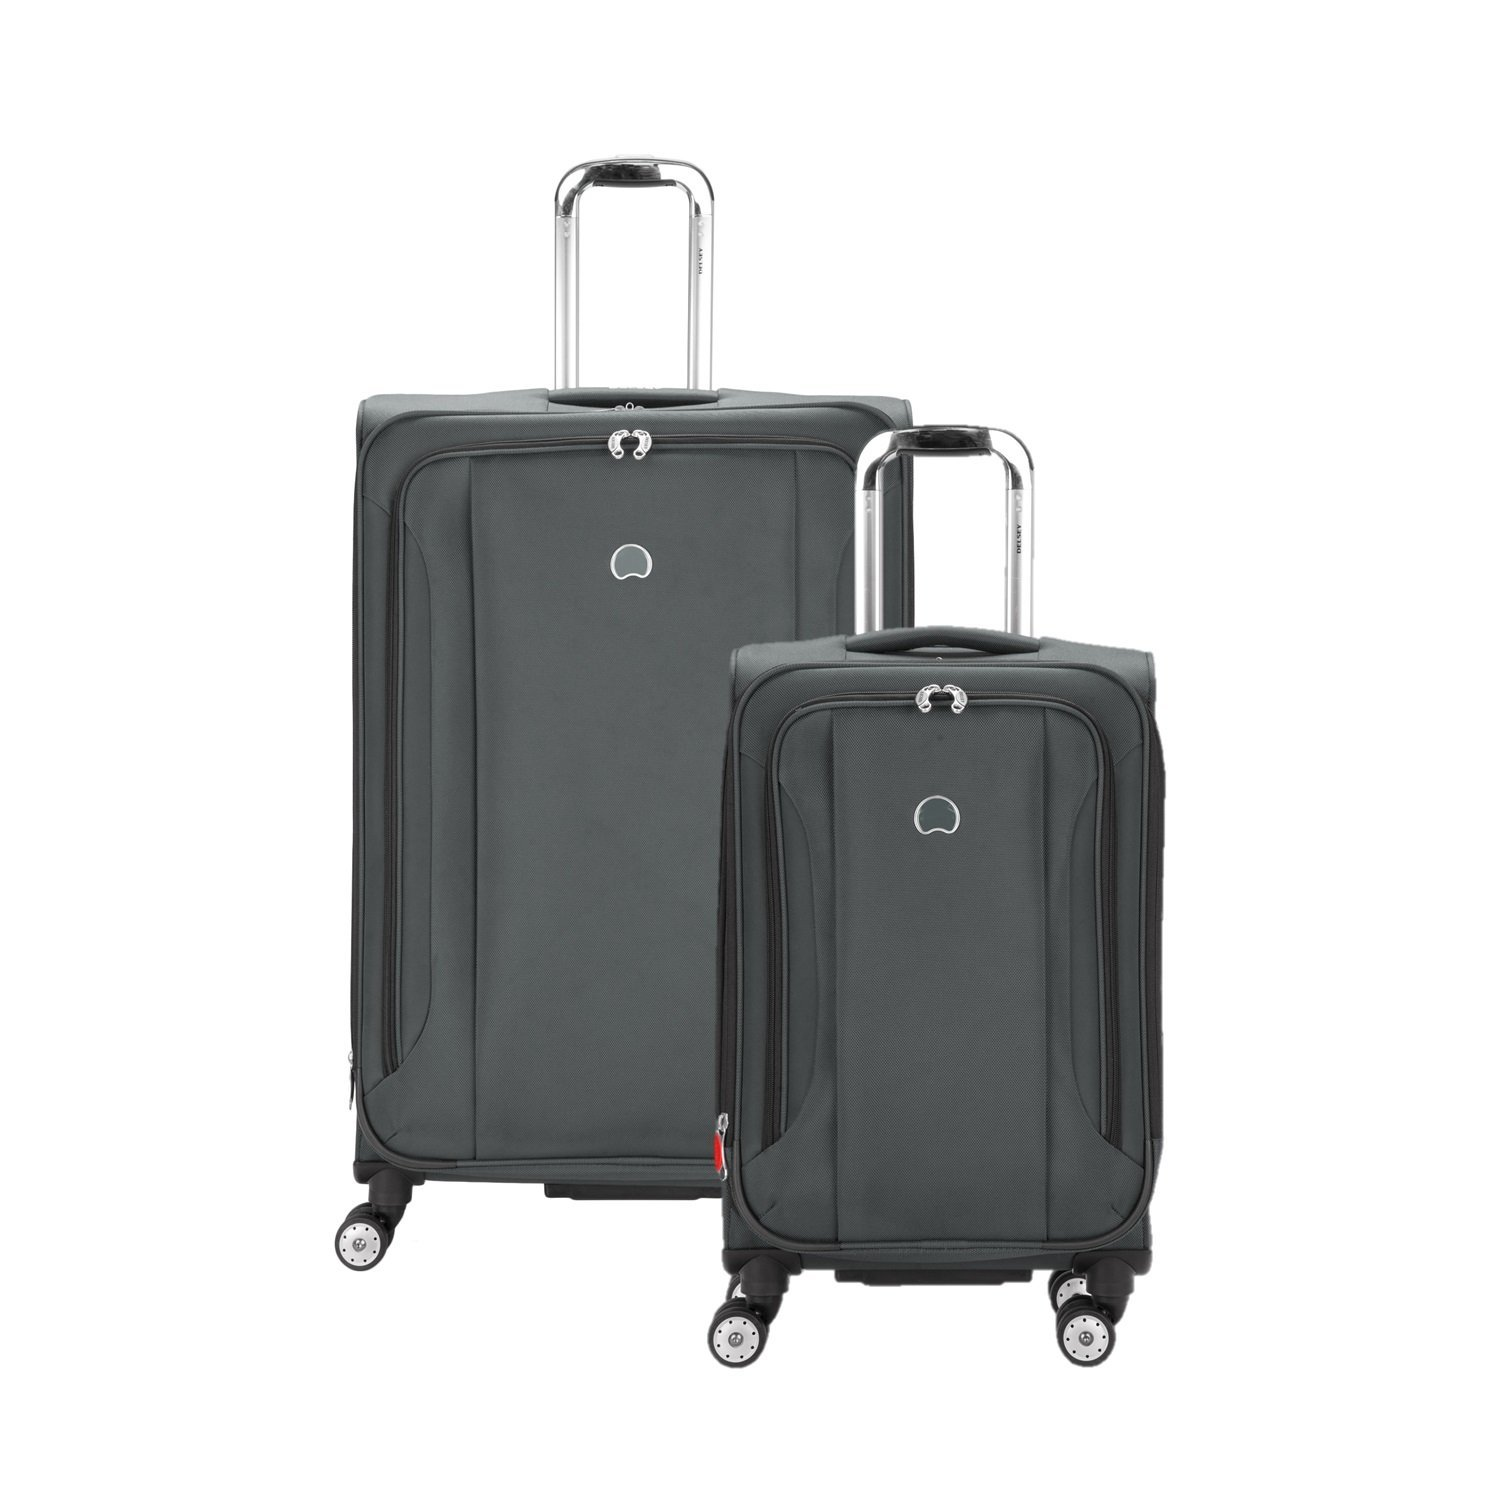 Cheap Delsey Luggage Reviews Find Delsey Luggage Reviews